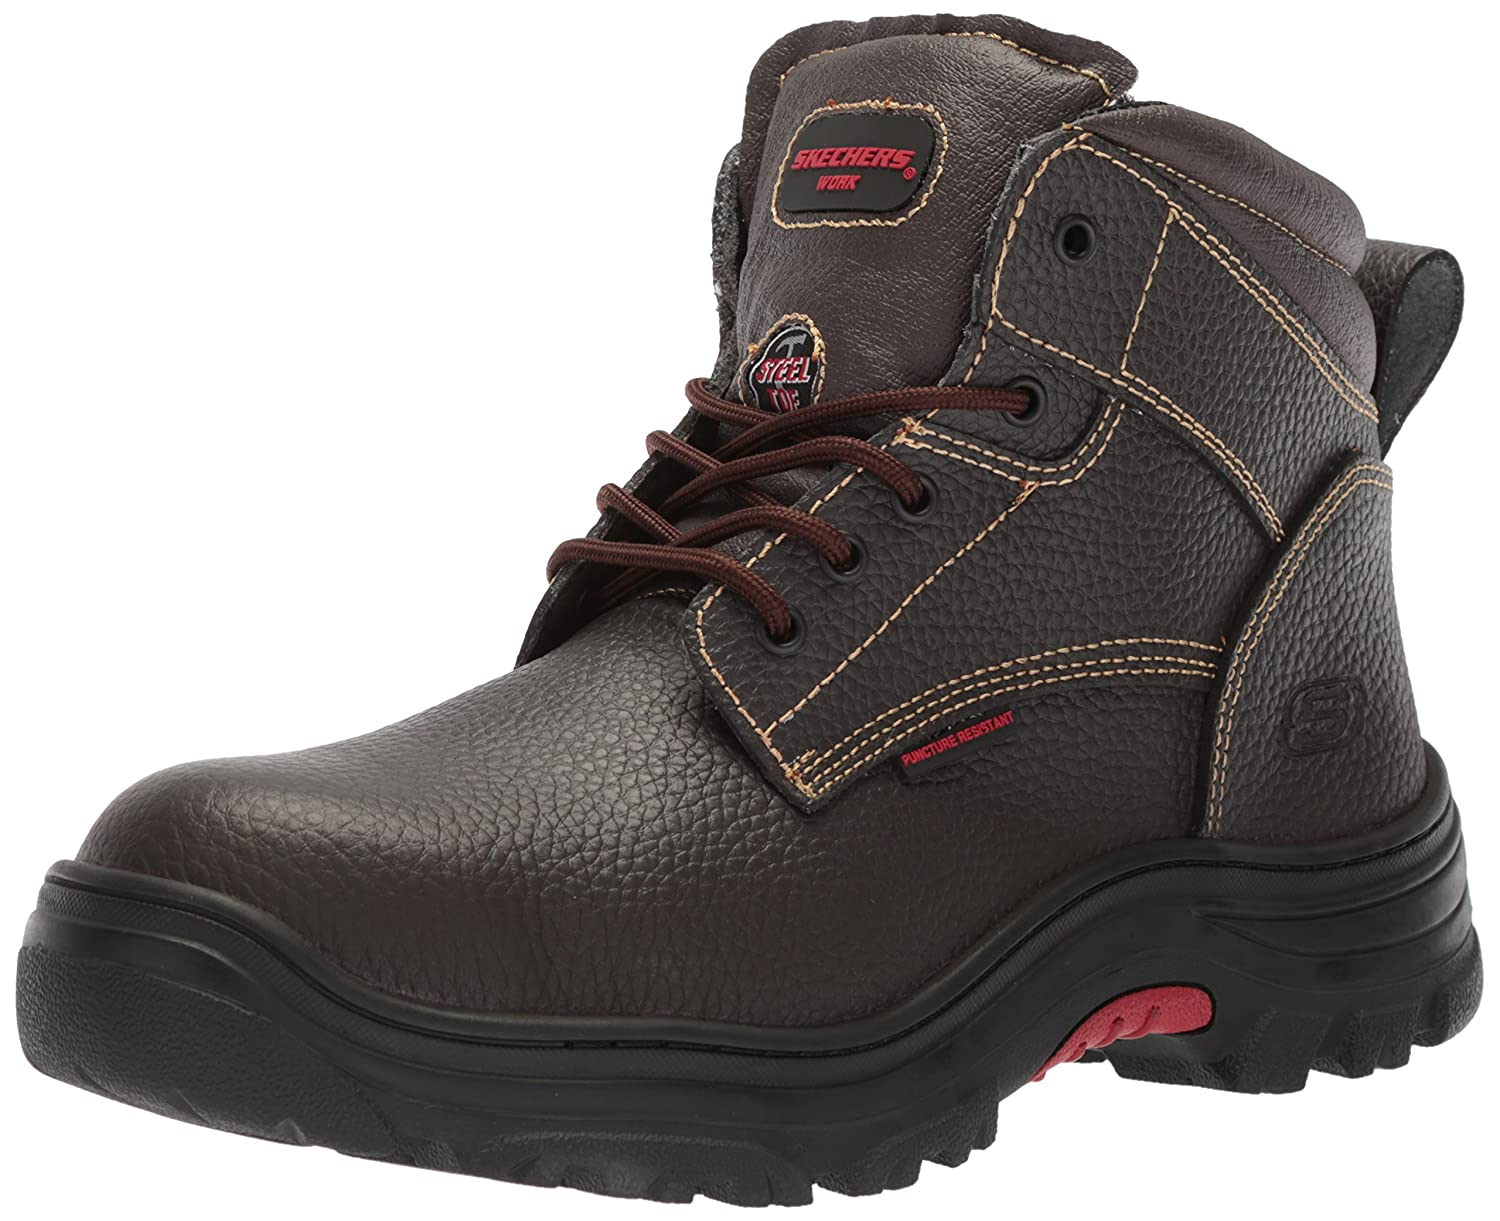 Skechers for Work メンズ Burgin-Tarlac Brown Embossed Leather 8.5 D(M) US 8.5 D(M) USBrown Embossed Leather B073WHP6C6